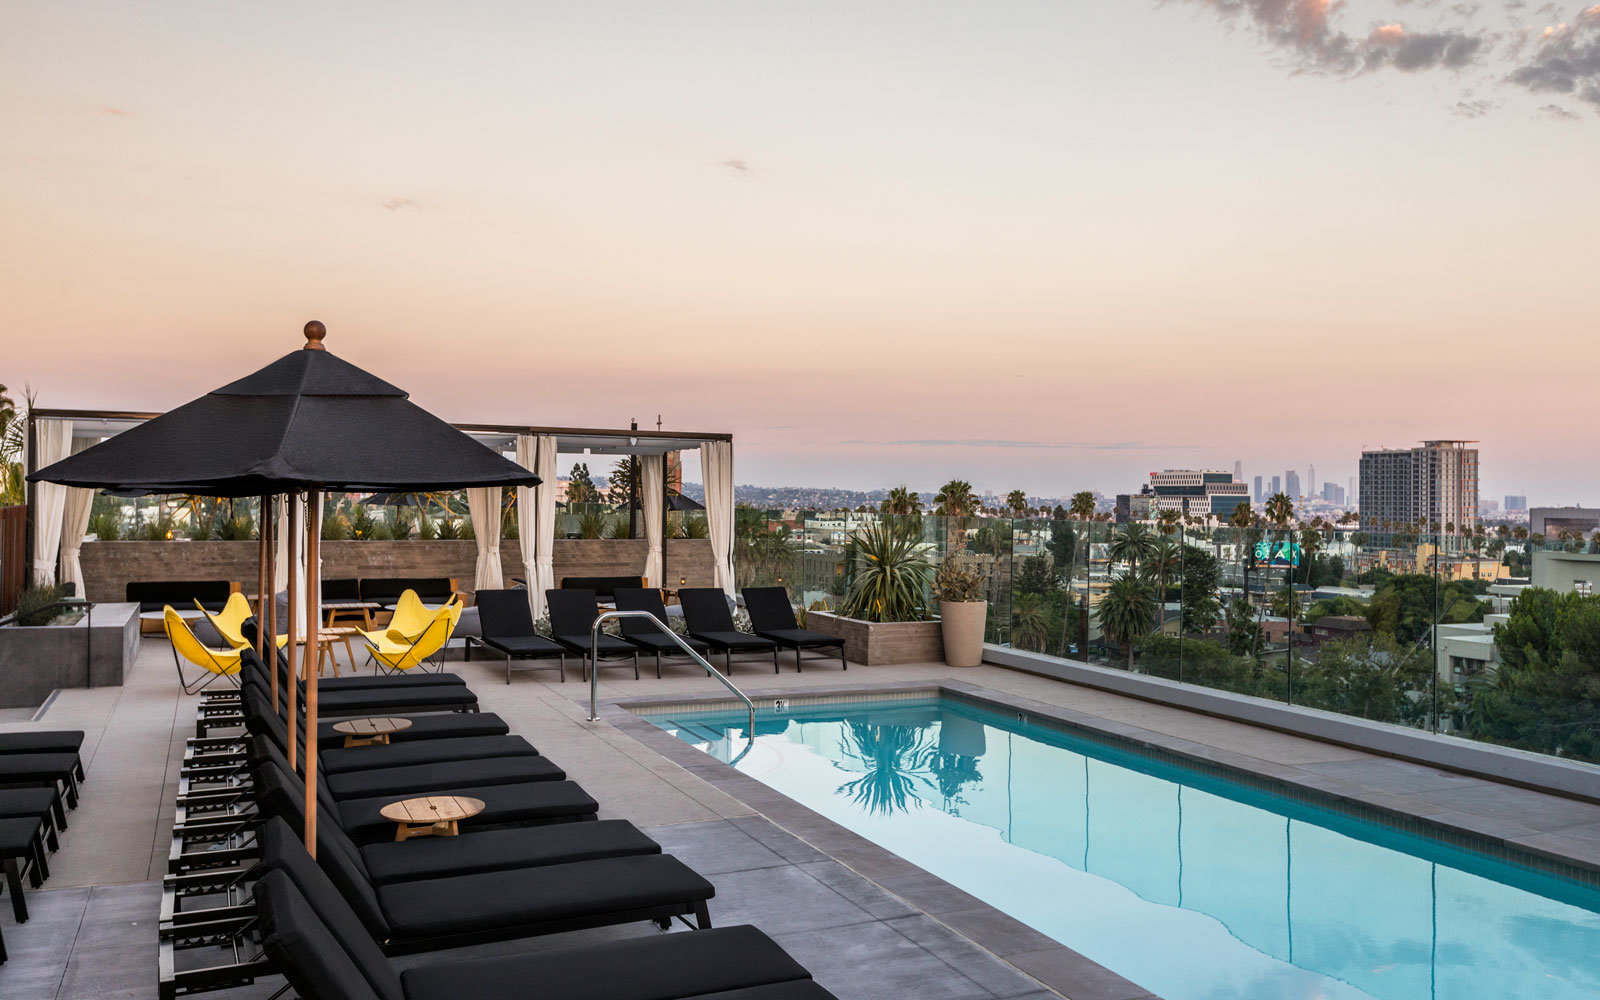 Kimpton Everly in West Hollywood